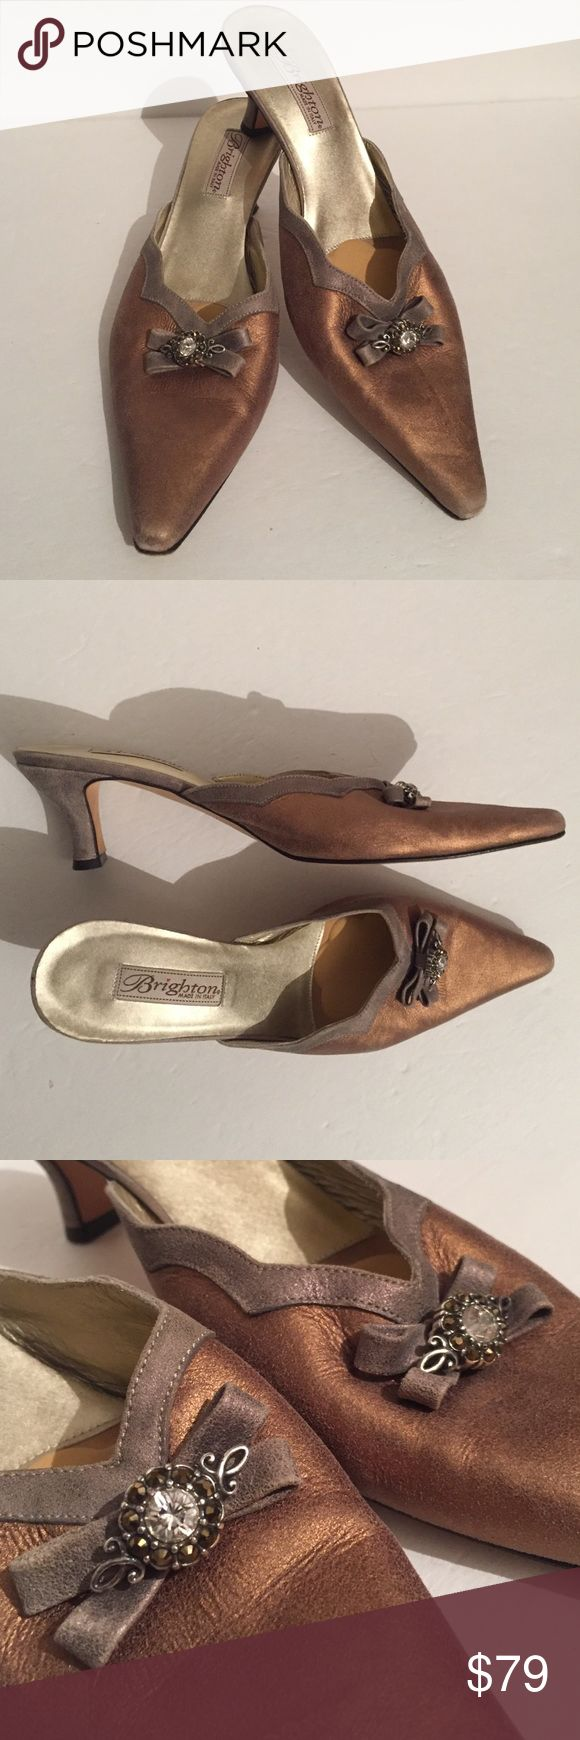 Brighton copper metallic leather mule size 9!! This is a beautiful pair of Brighton copper metallic leather mules size 9. The bow embellishment on the front is absolutely exquisite. Gently used and in very good condition with just the slightest typical signs of wear on the leather around the tip and the heel which is to be expected with fine leather. See photos for details. Brighton Shoes Mules & Clogs